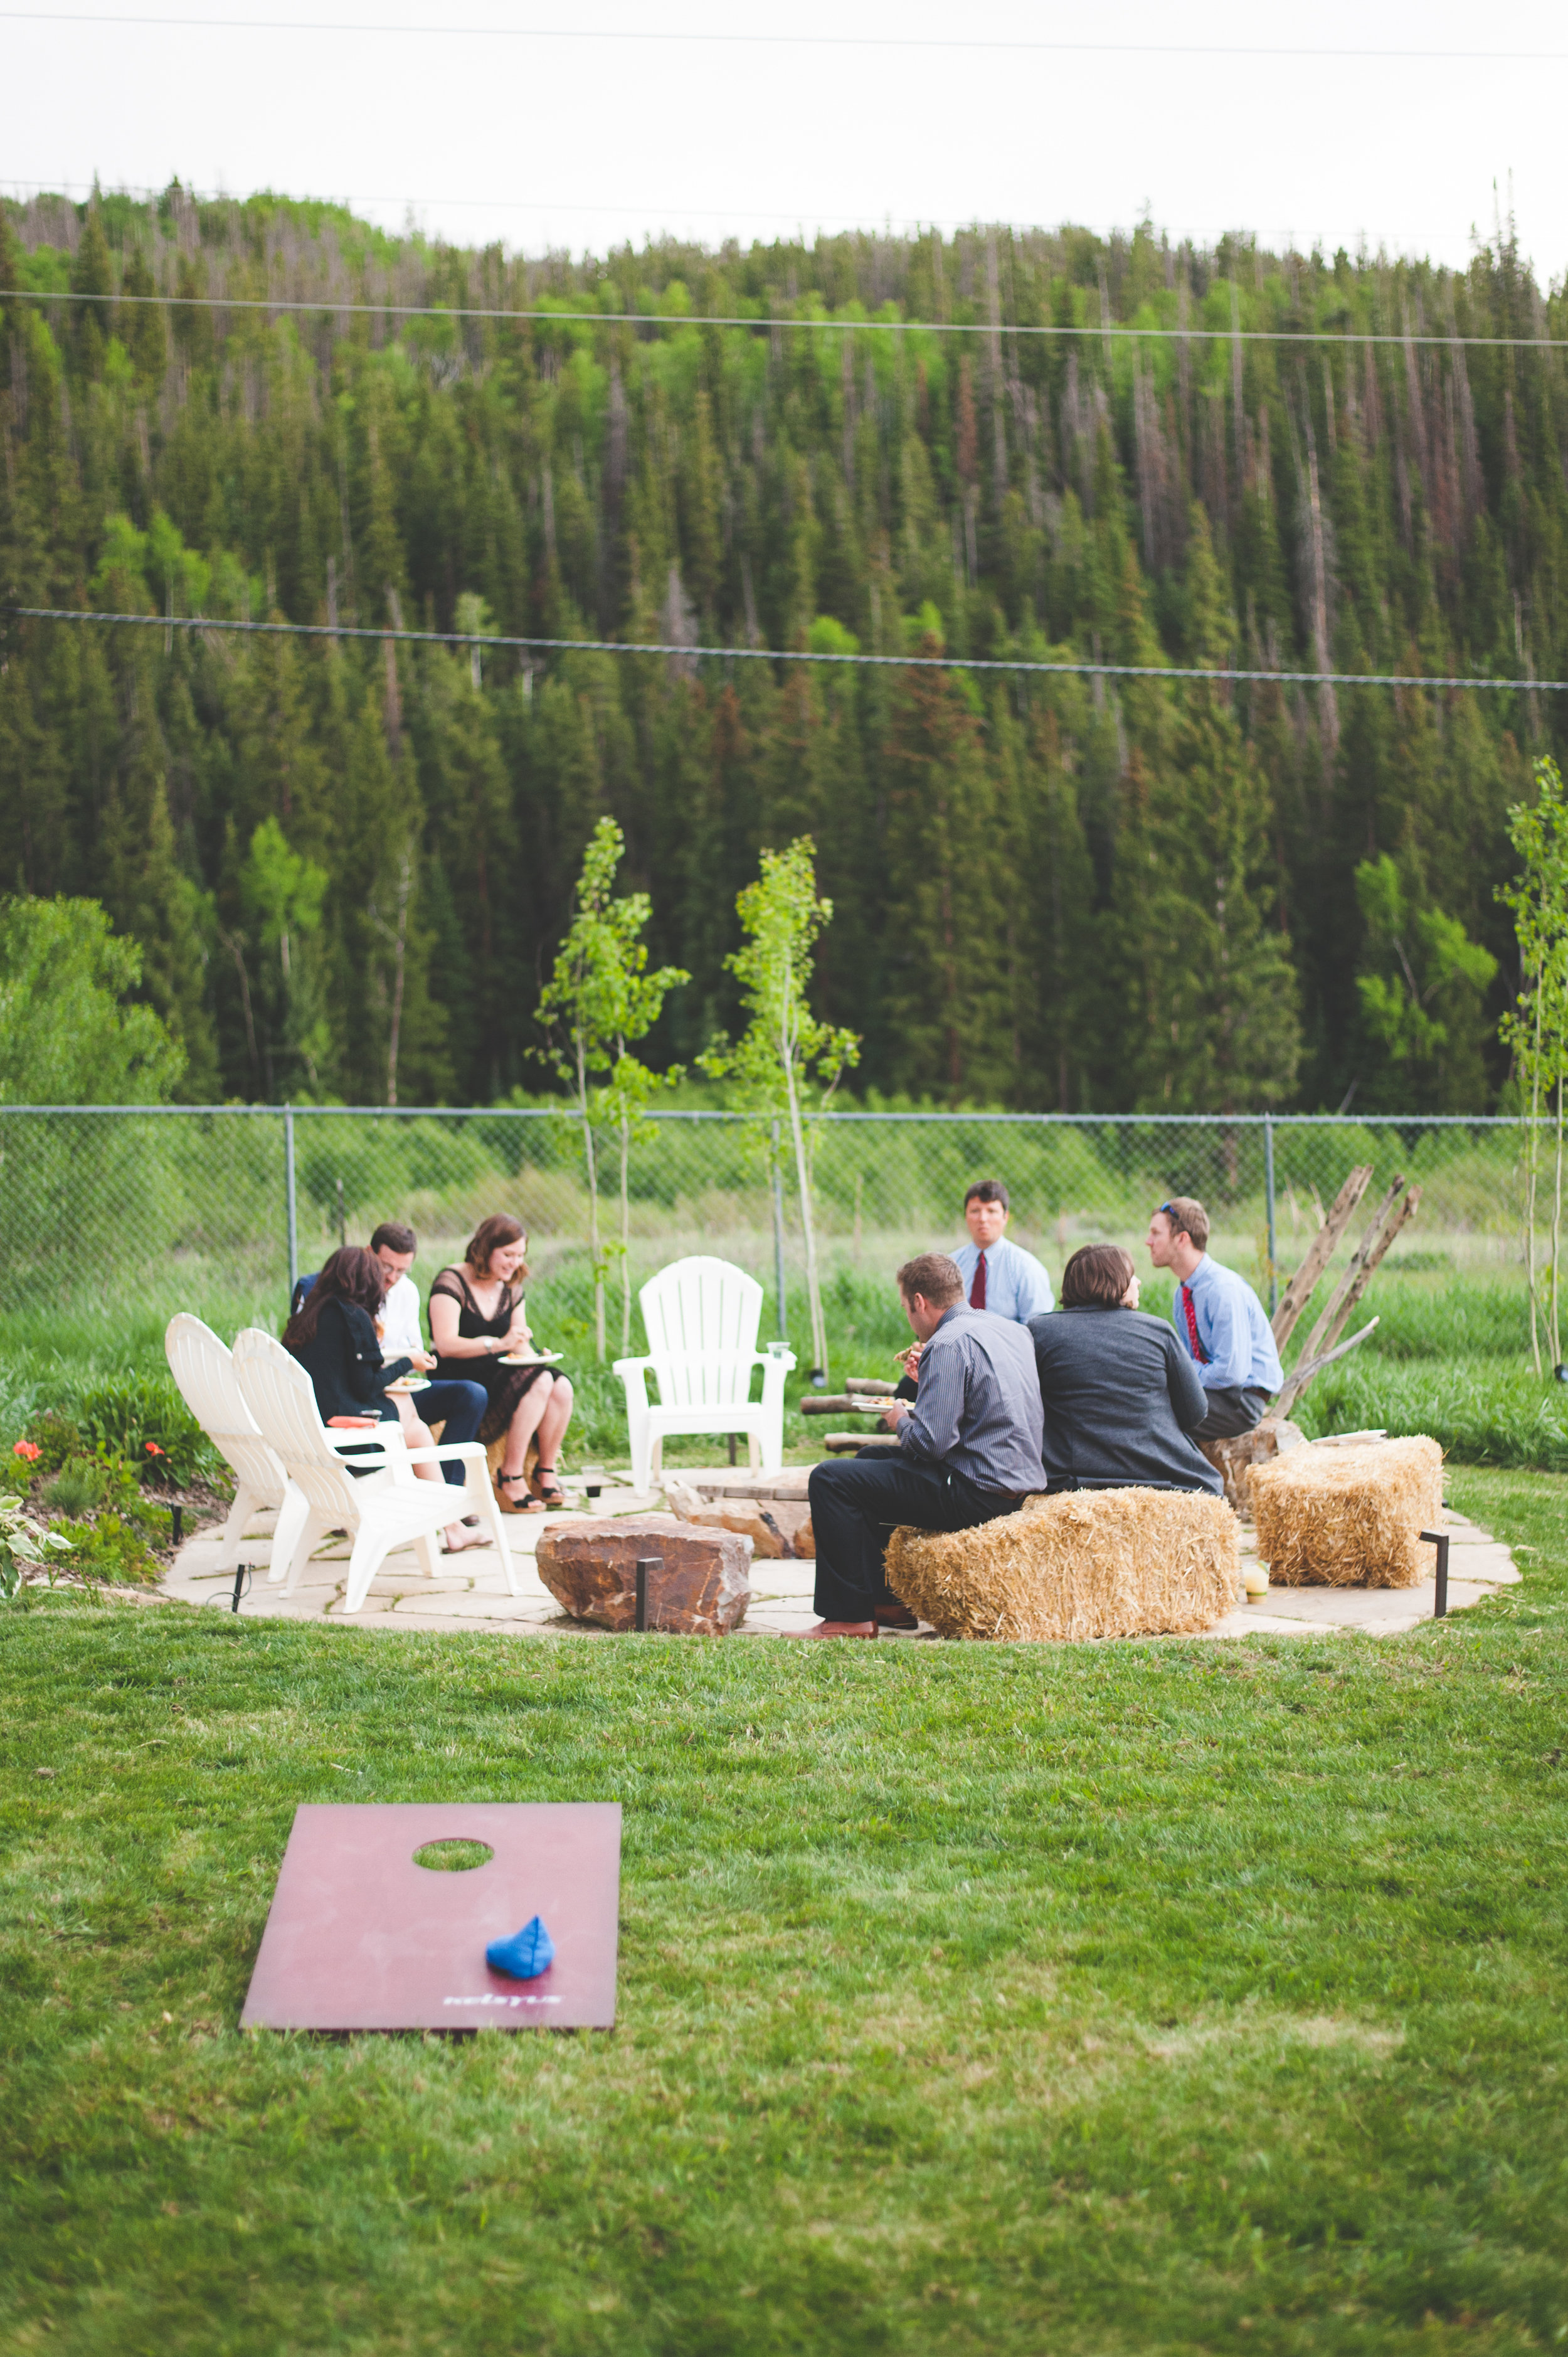 hay bales and fire pit at outdoor wedding reception